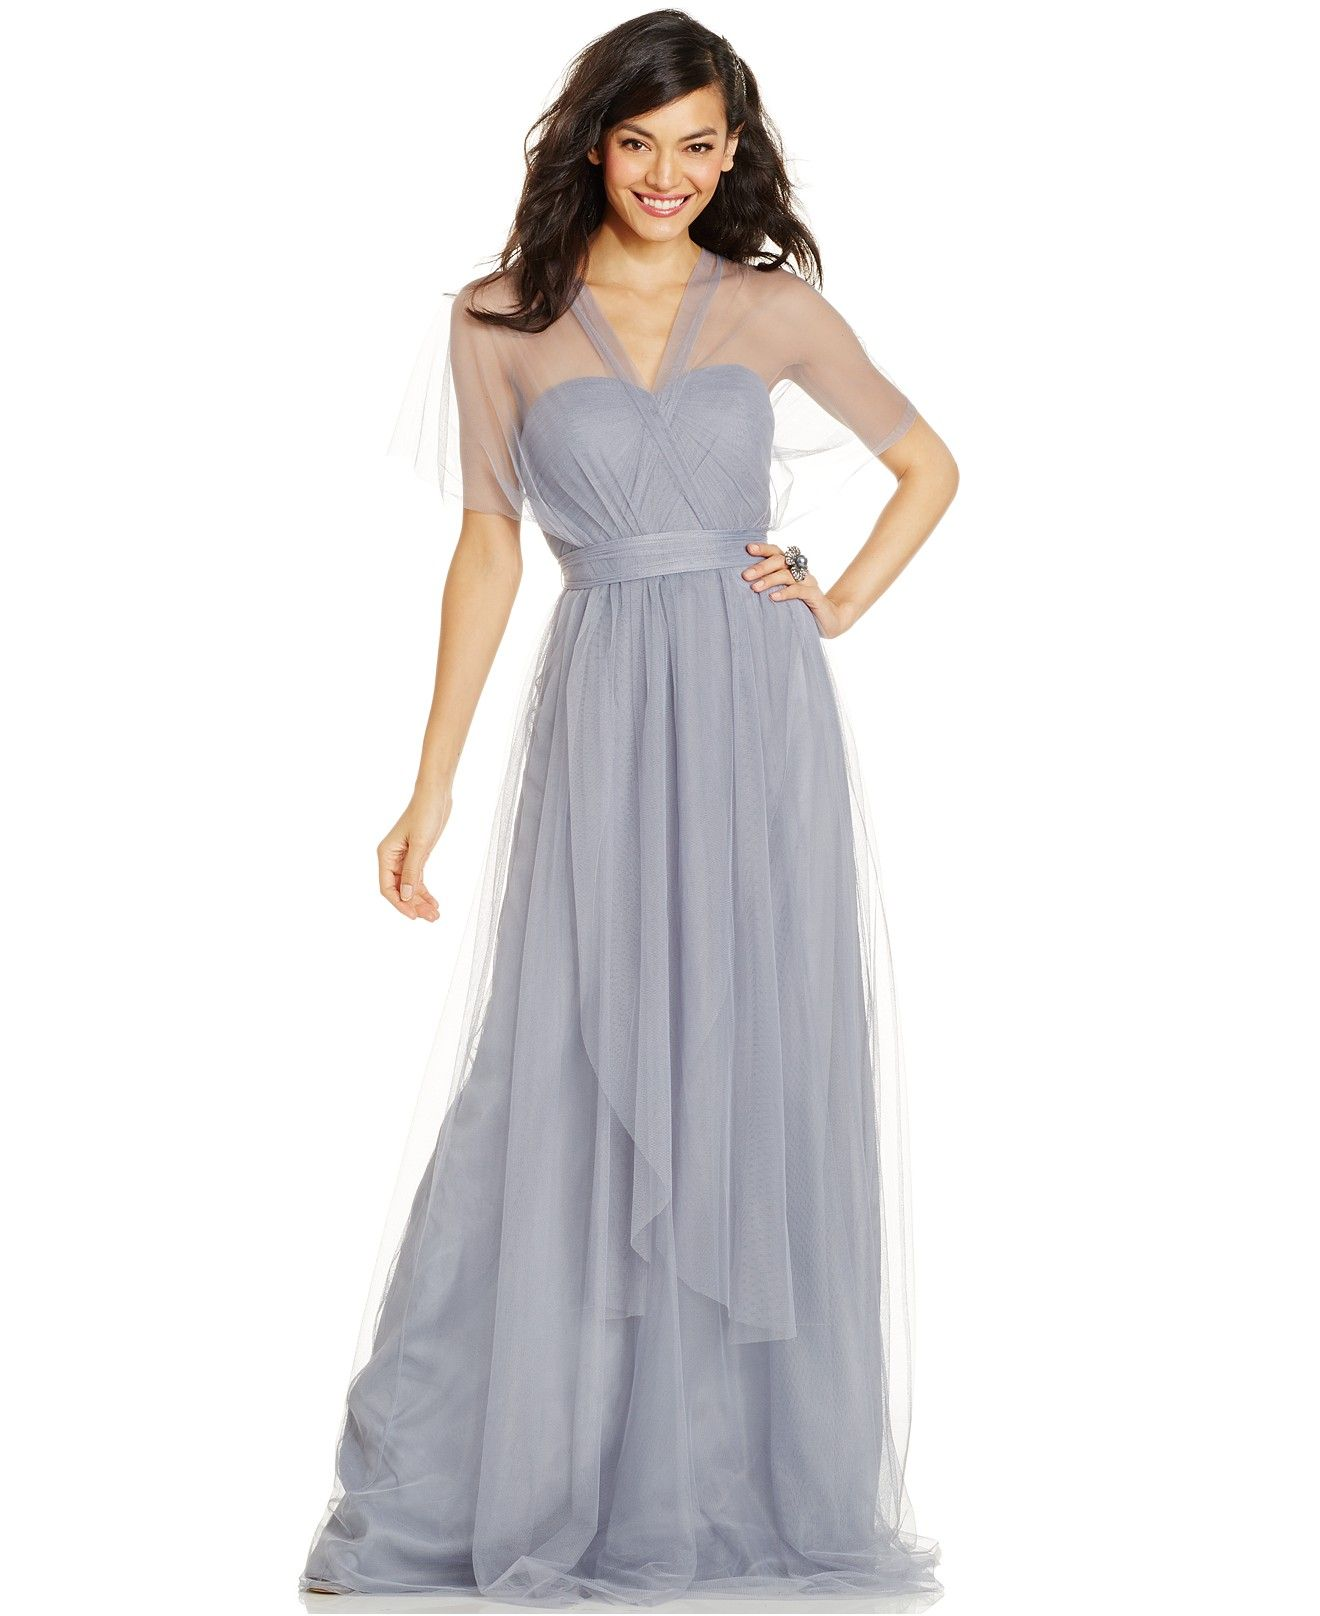 $230 Adrianna Papell Convertible Strapless Tulle Gown - Dresses ...